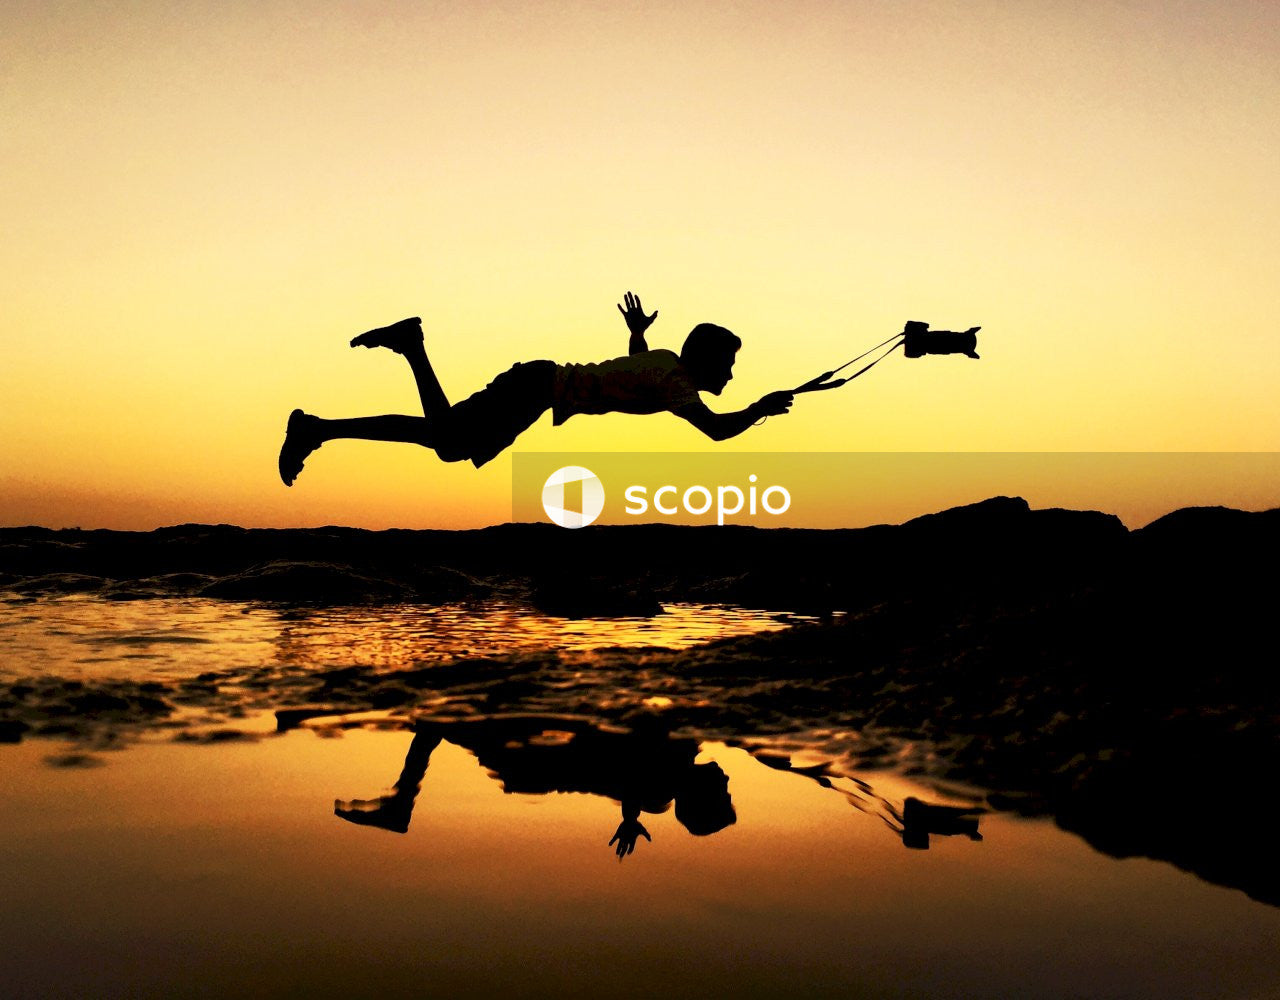 Silhouette of 2 person jumping on water during sunset